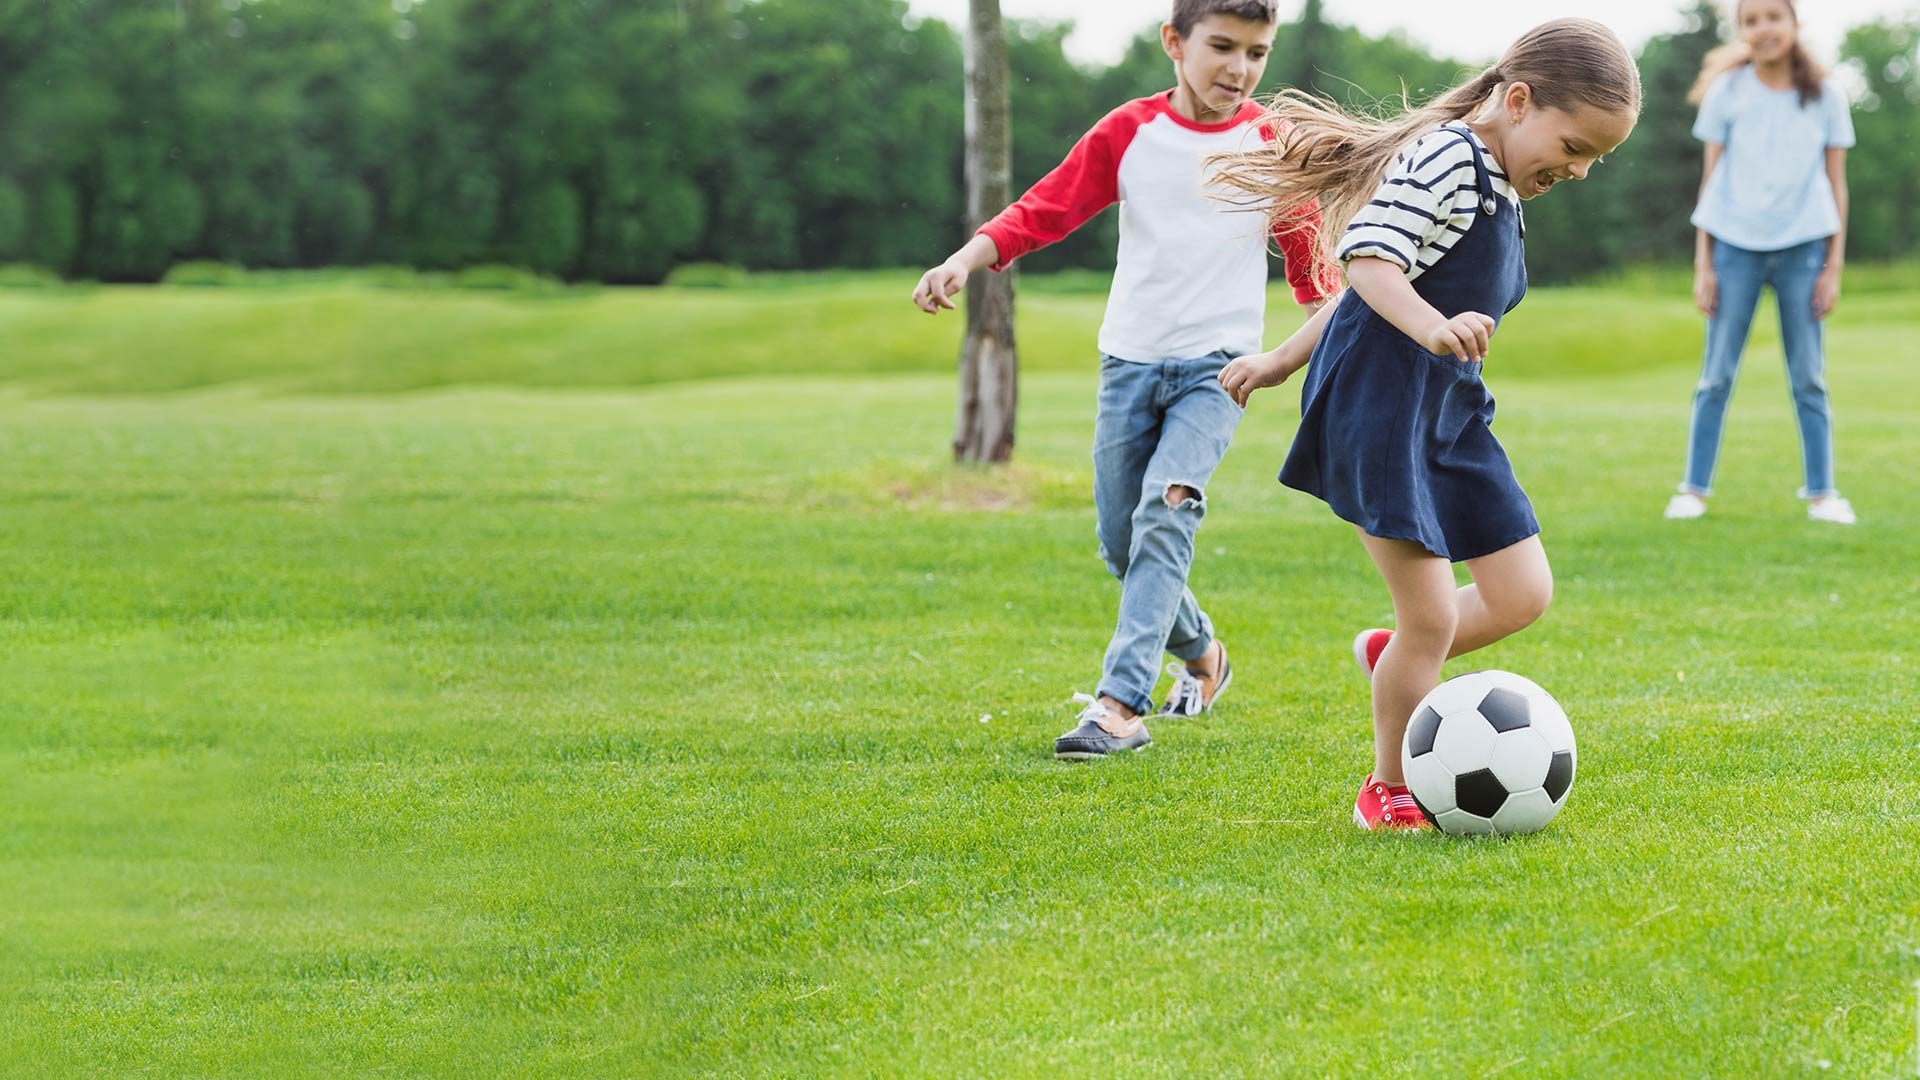 Sports Banner Kids Playing Soccer